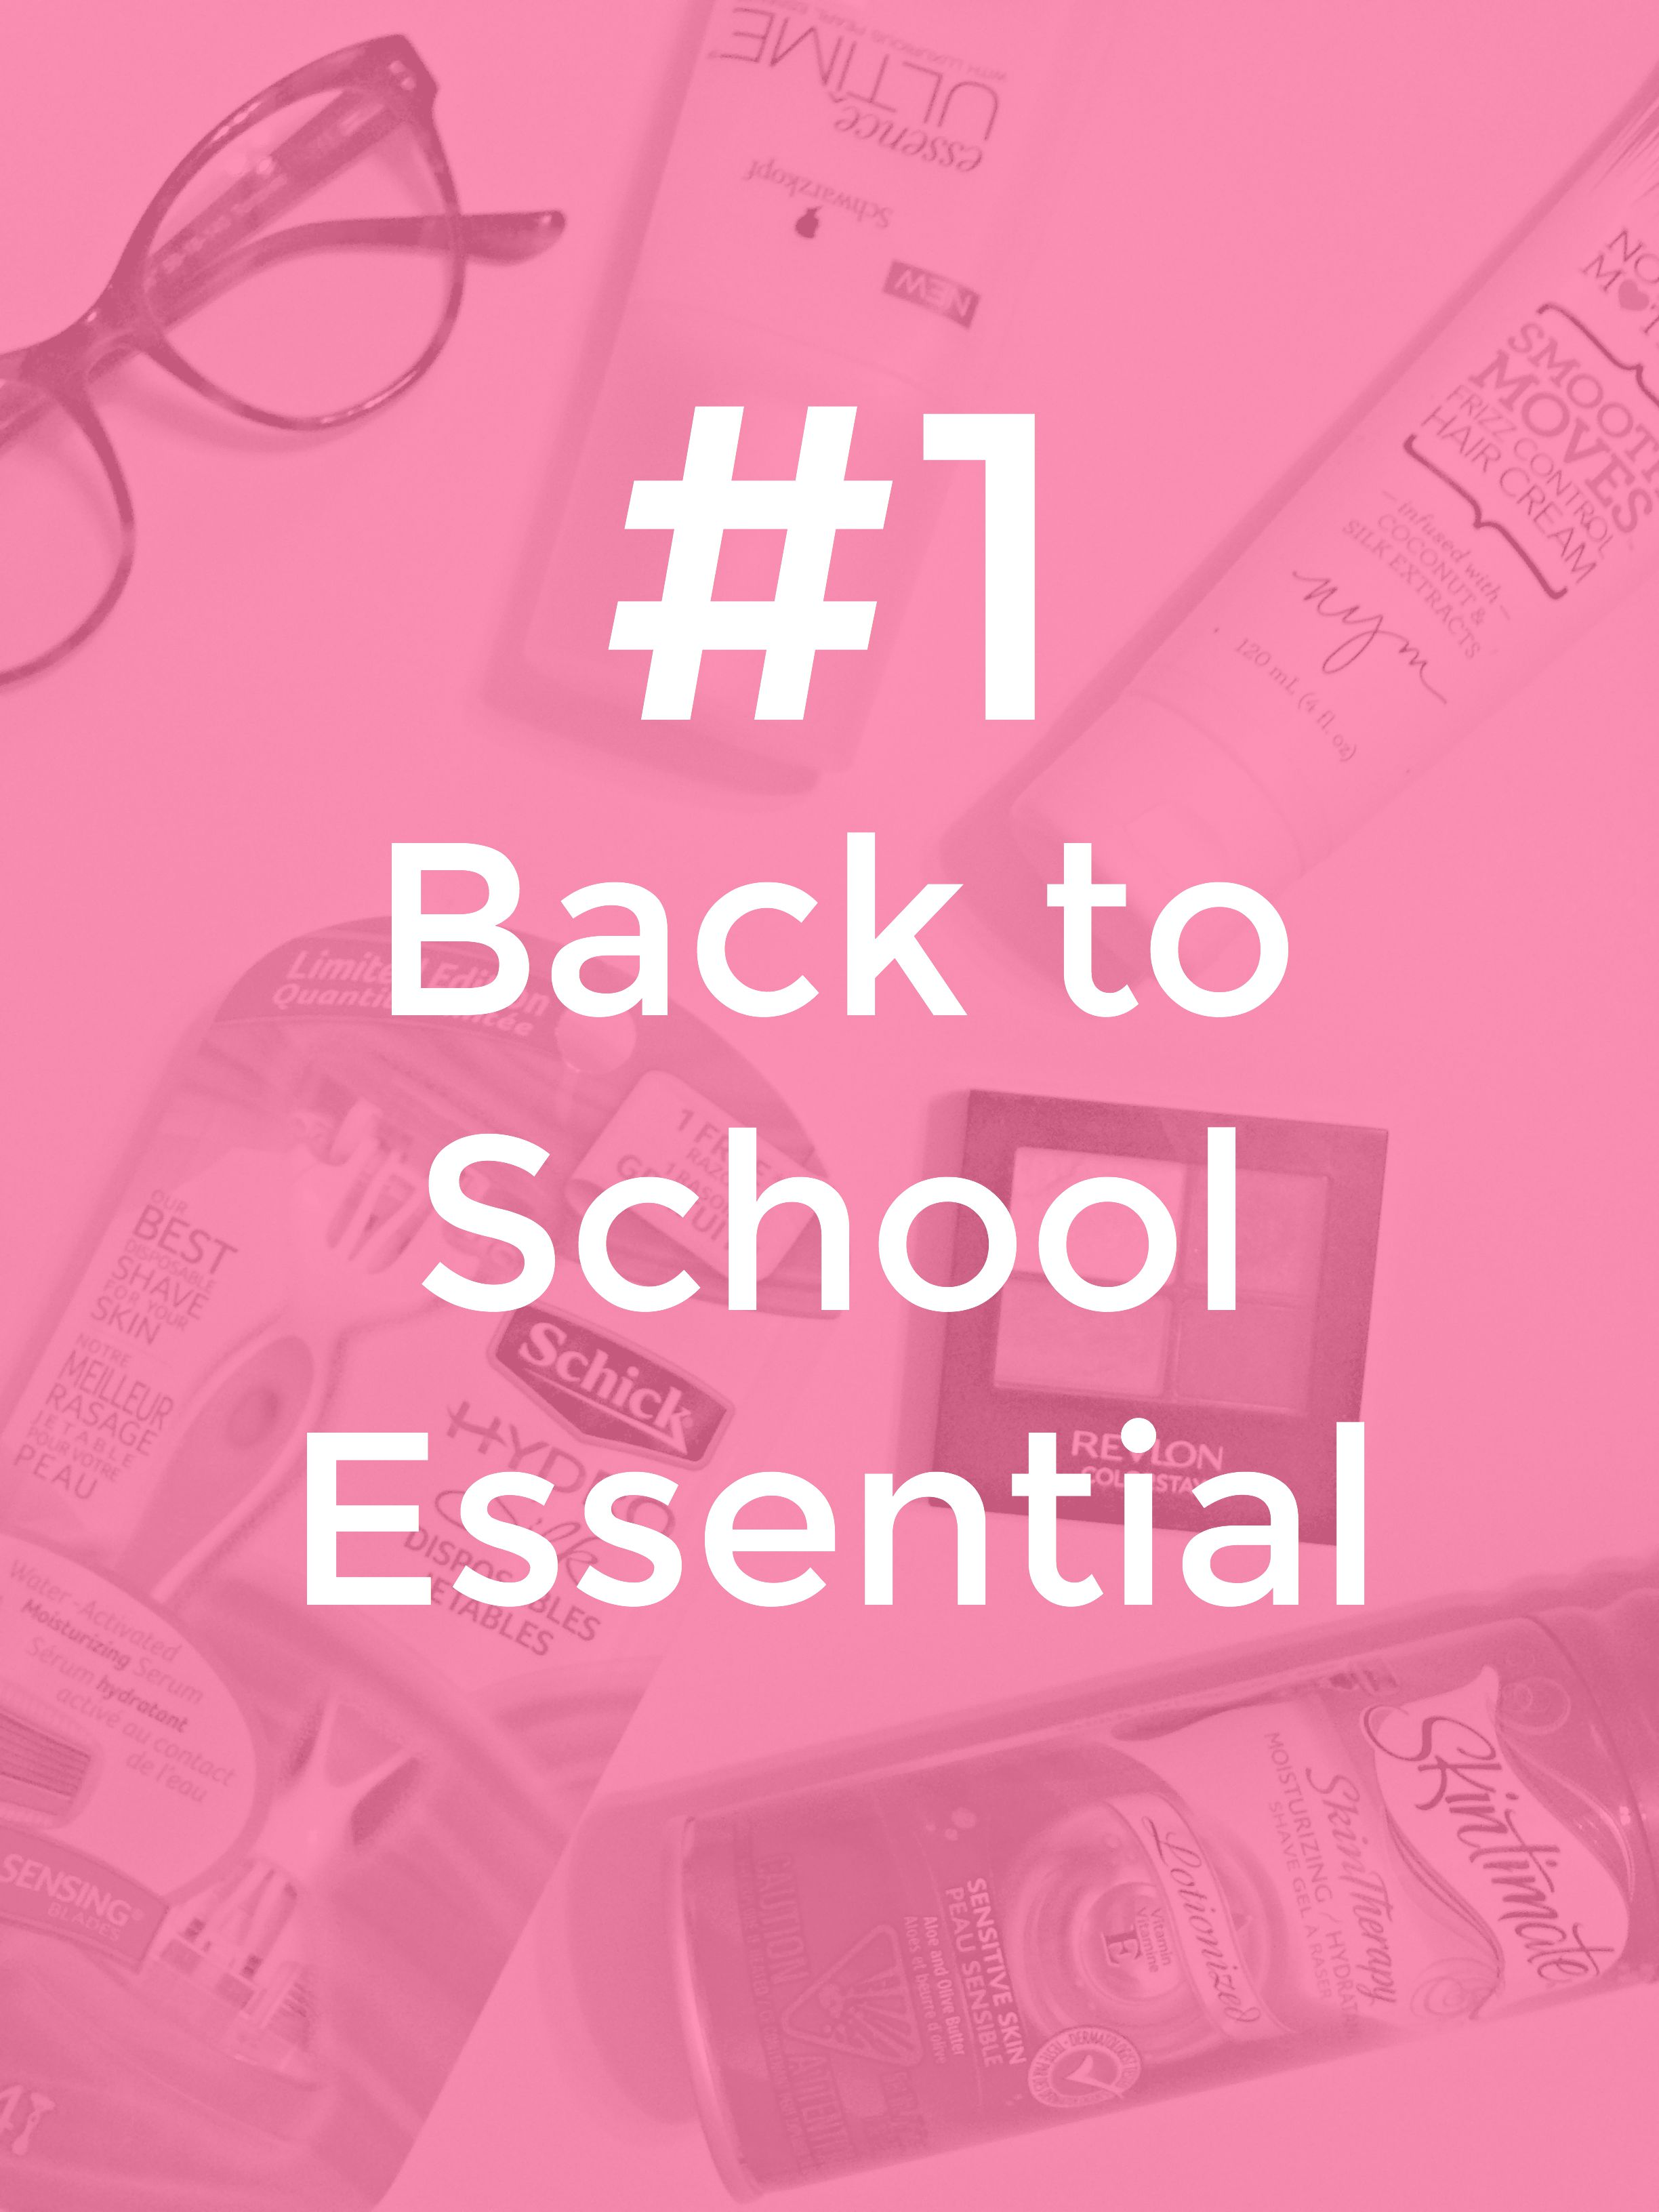 back to school essential-pink